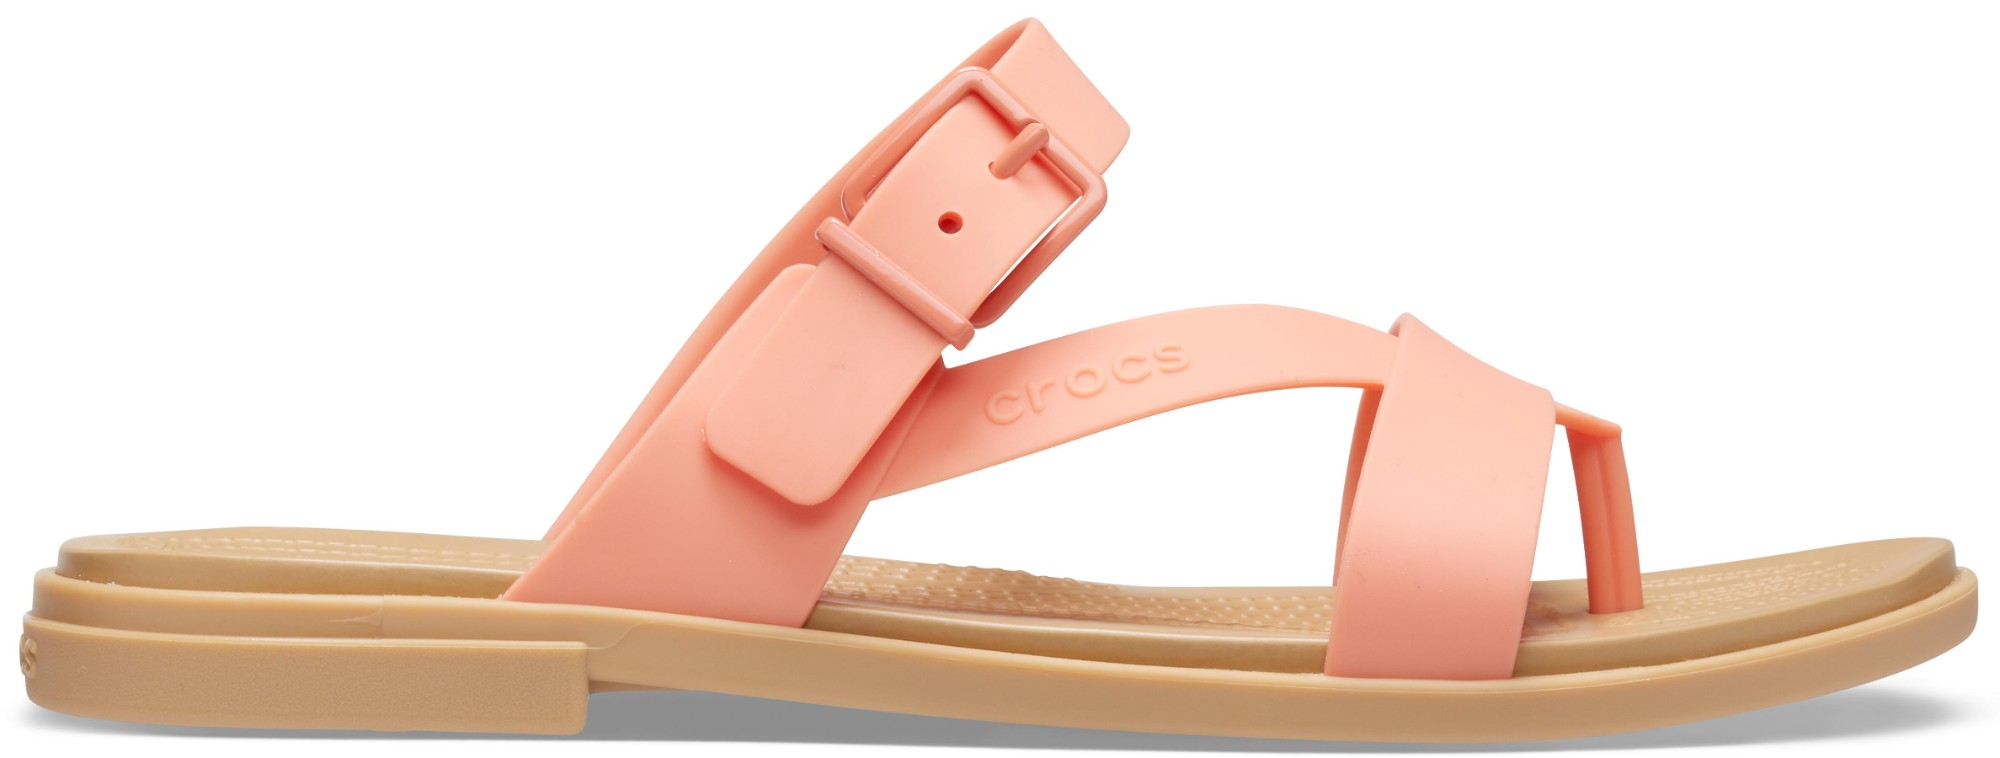 Crocs™ Tulum Toe Post Sandal Womens Grapefruit/Tan 36,5